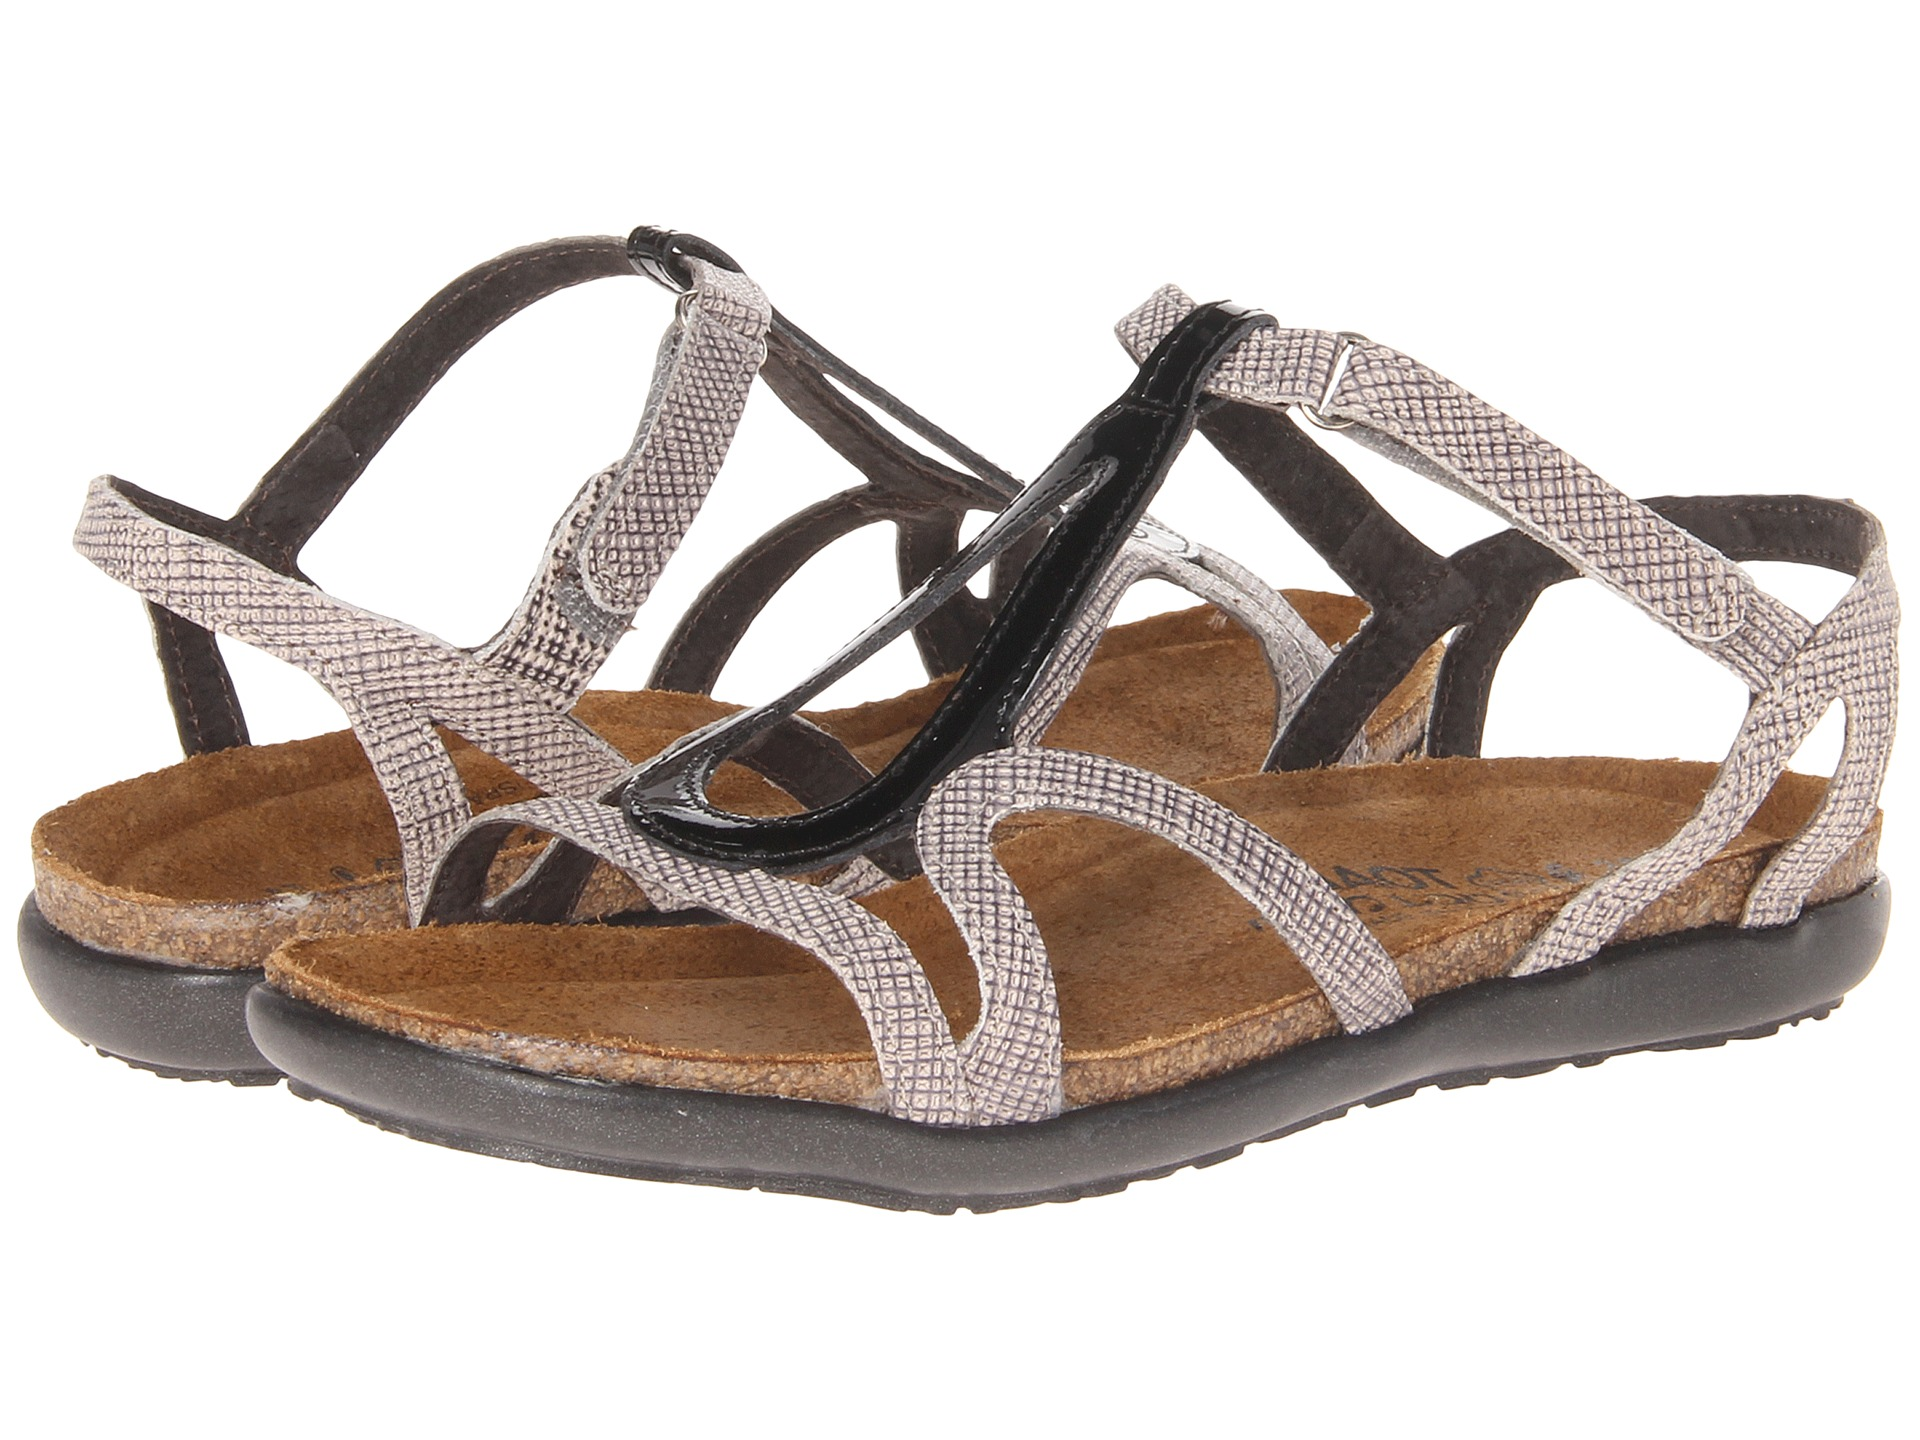 Shoes online for women. Naot shoes clearance